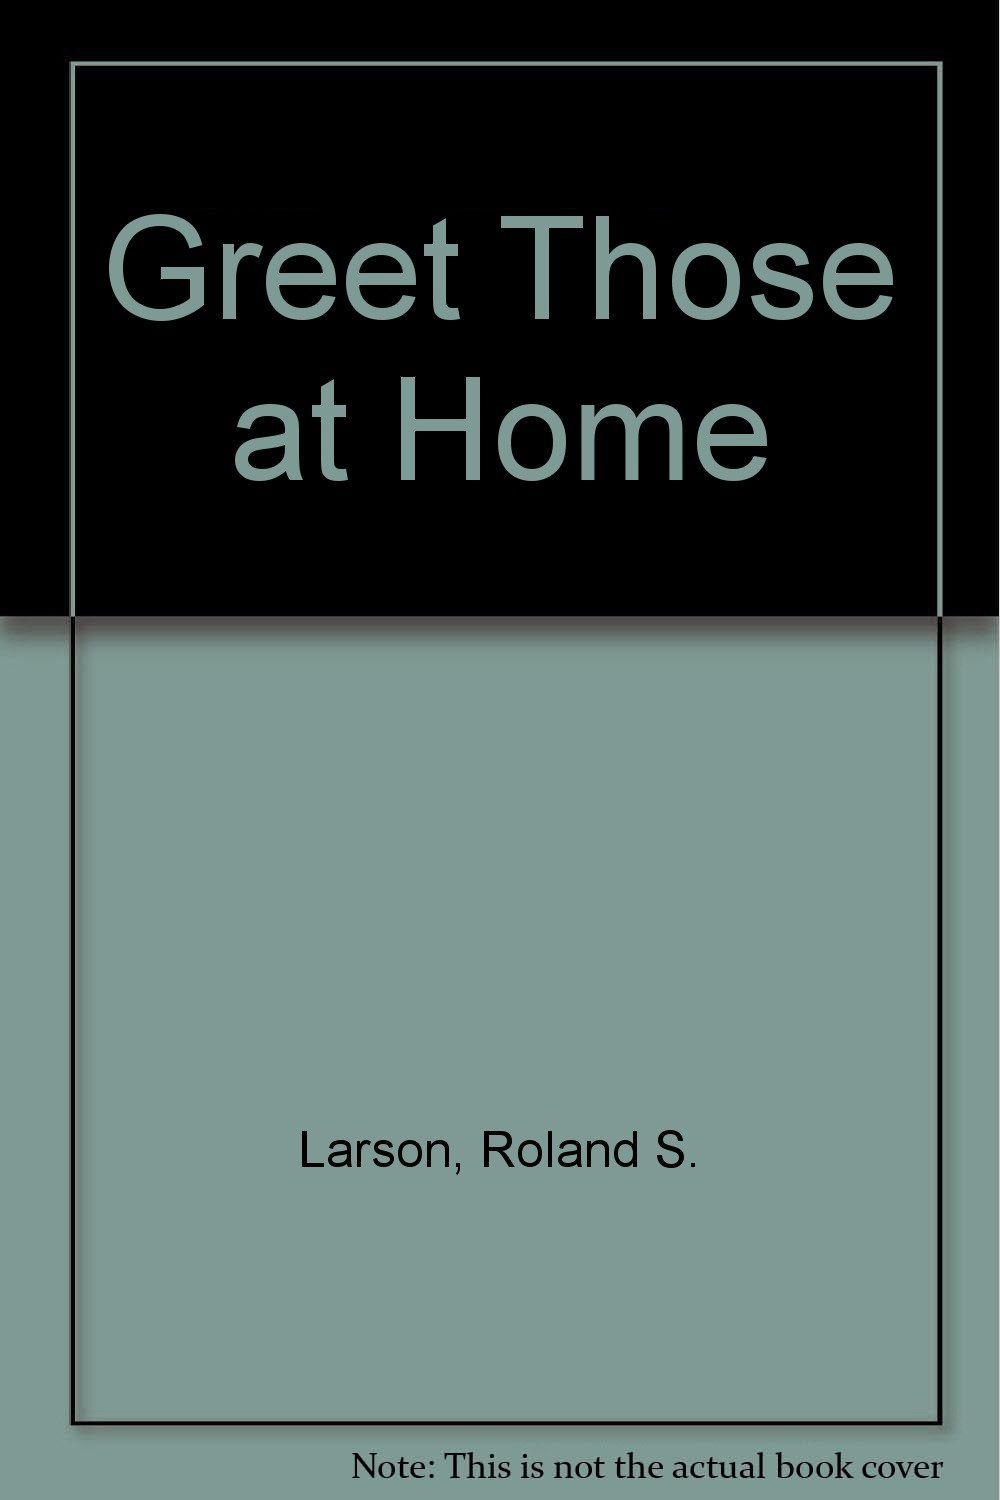 Greet Those at Home: A Photographic Celebration of Sweden and Norway (English, Norwegian and Swedish Edition)